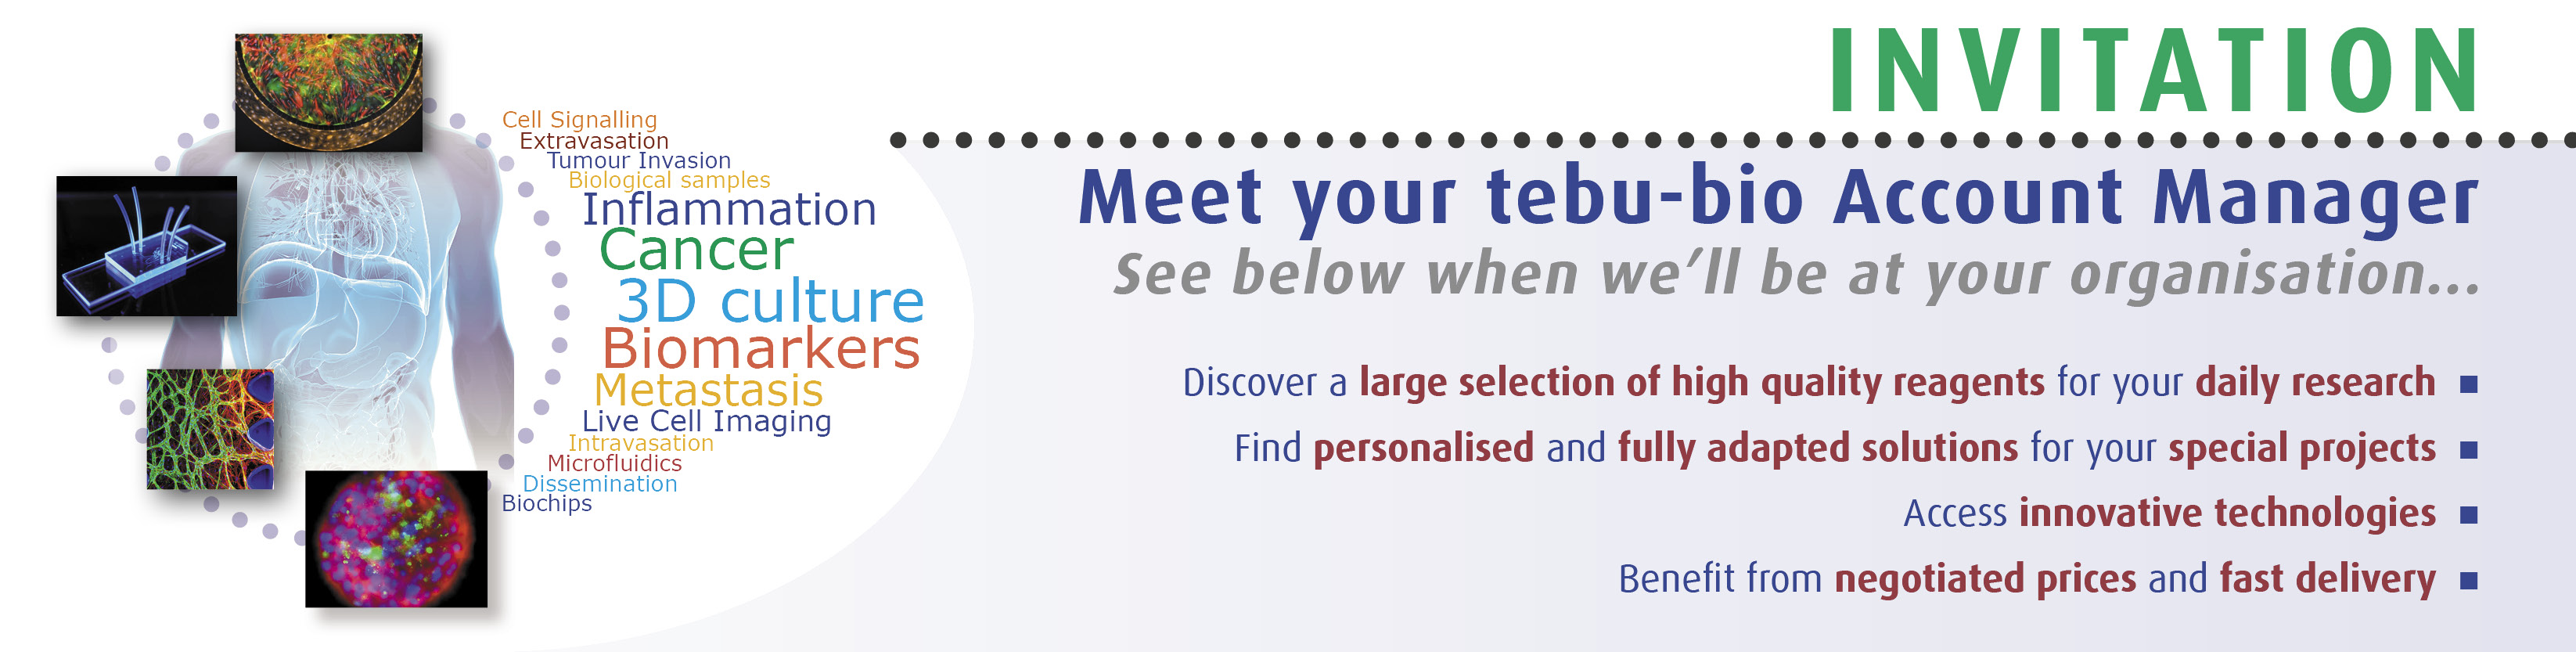 tebu-bio will be at Meet your tebu-bio Account Manager - CPTP Toulouse